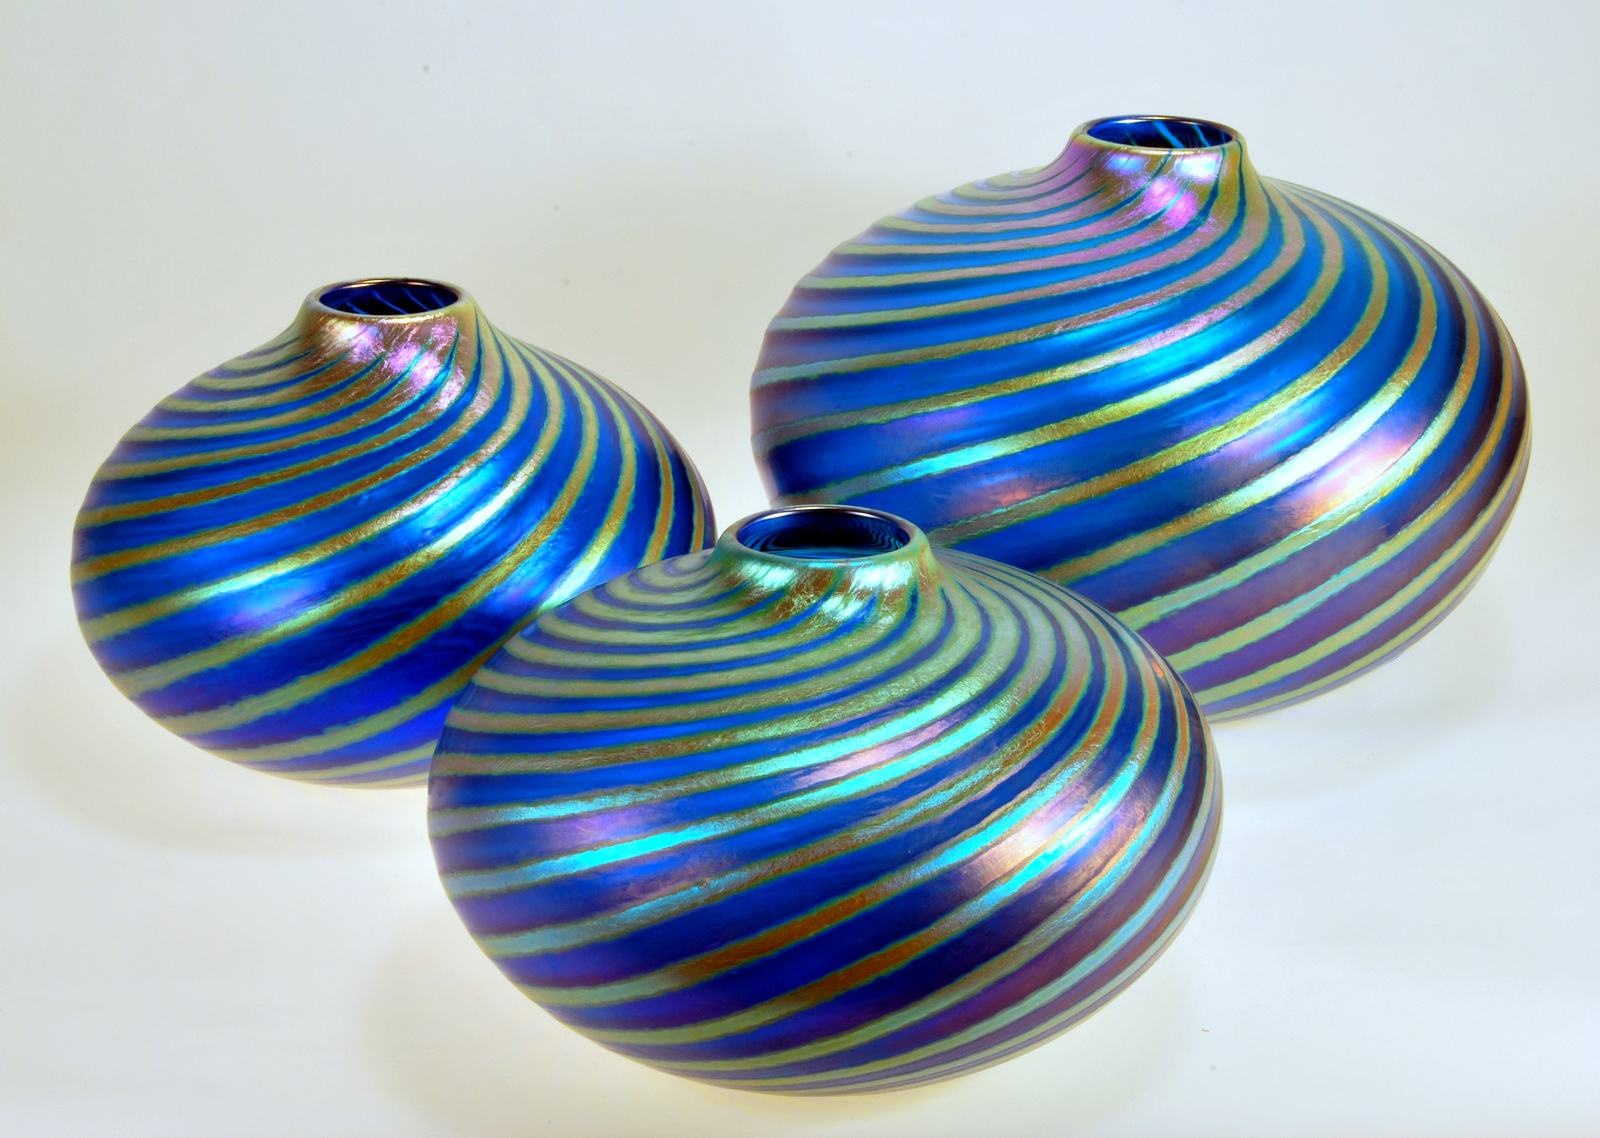 Peter_Vizzusi_glass_vessels_copy